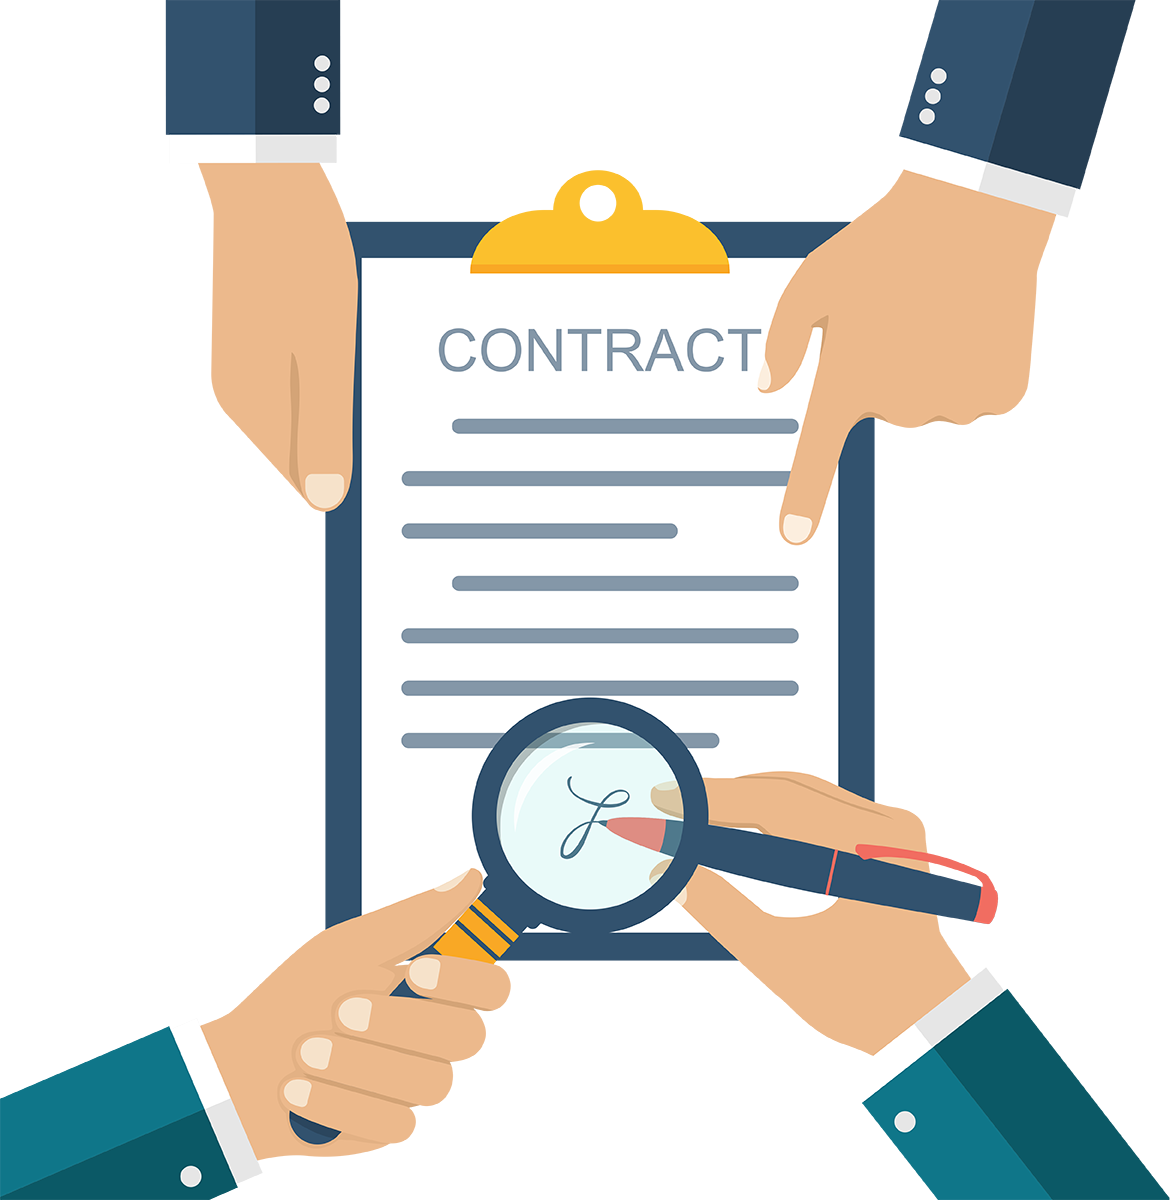 Contract covenant